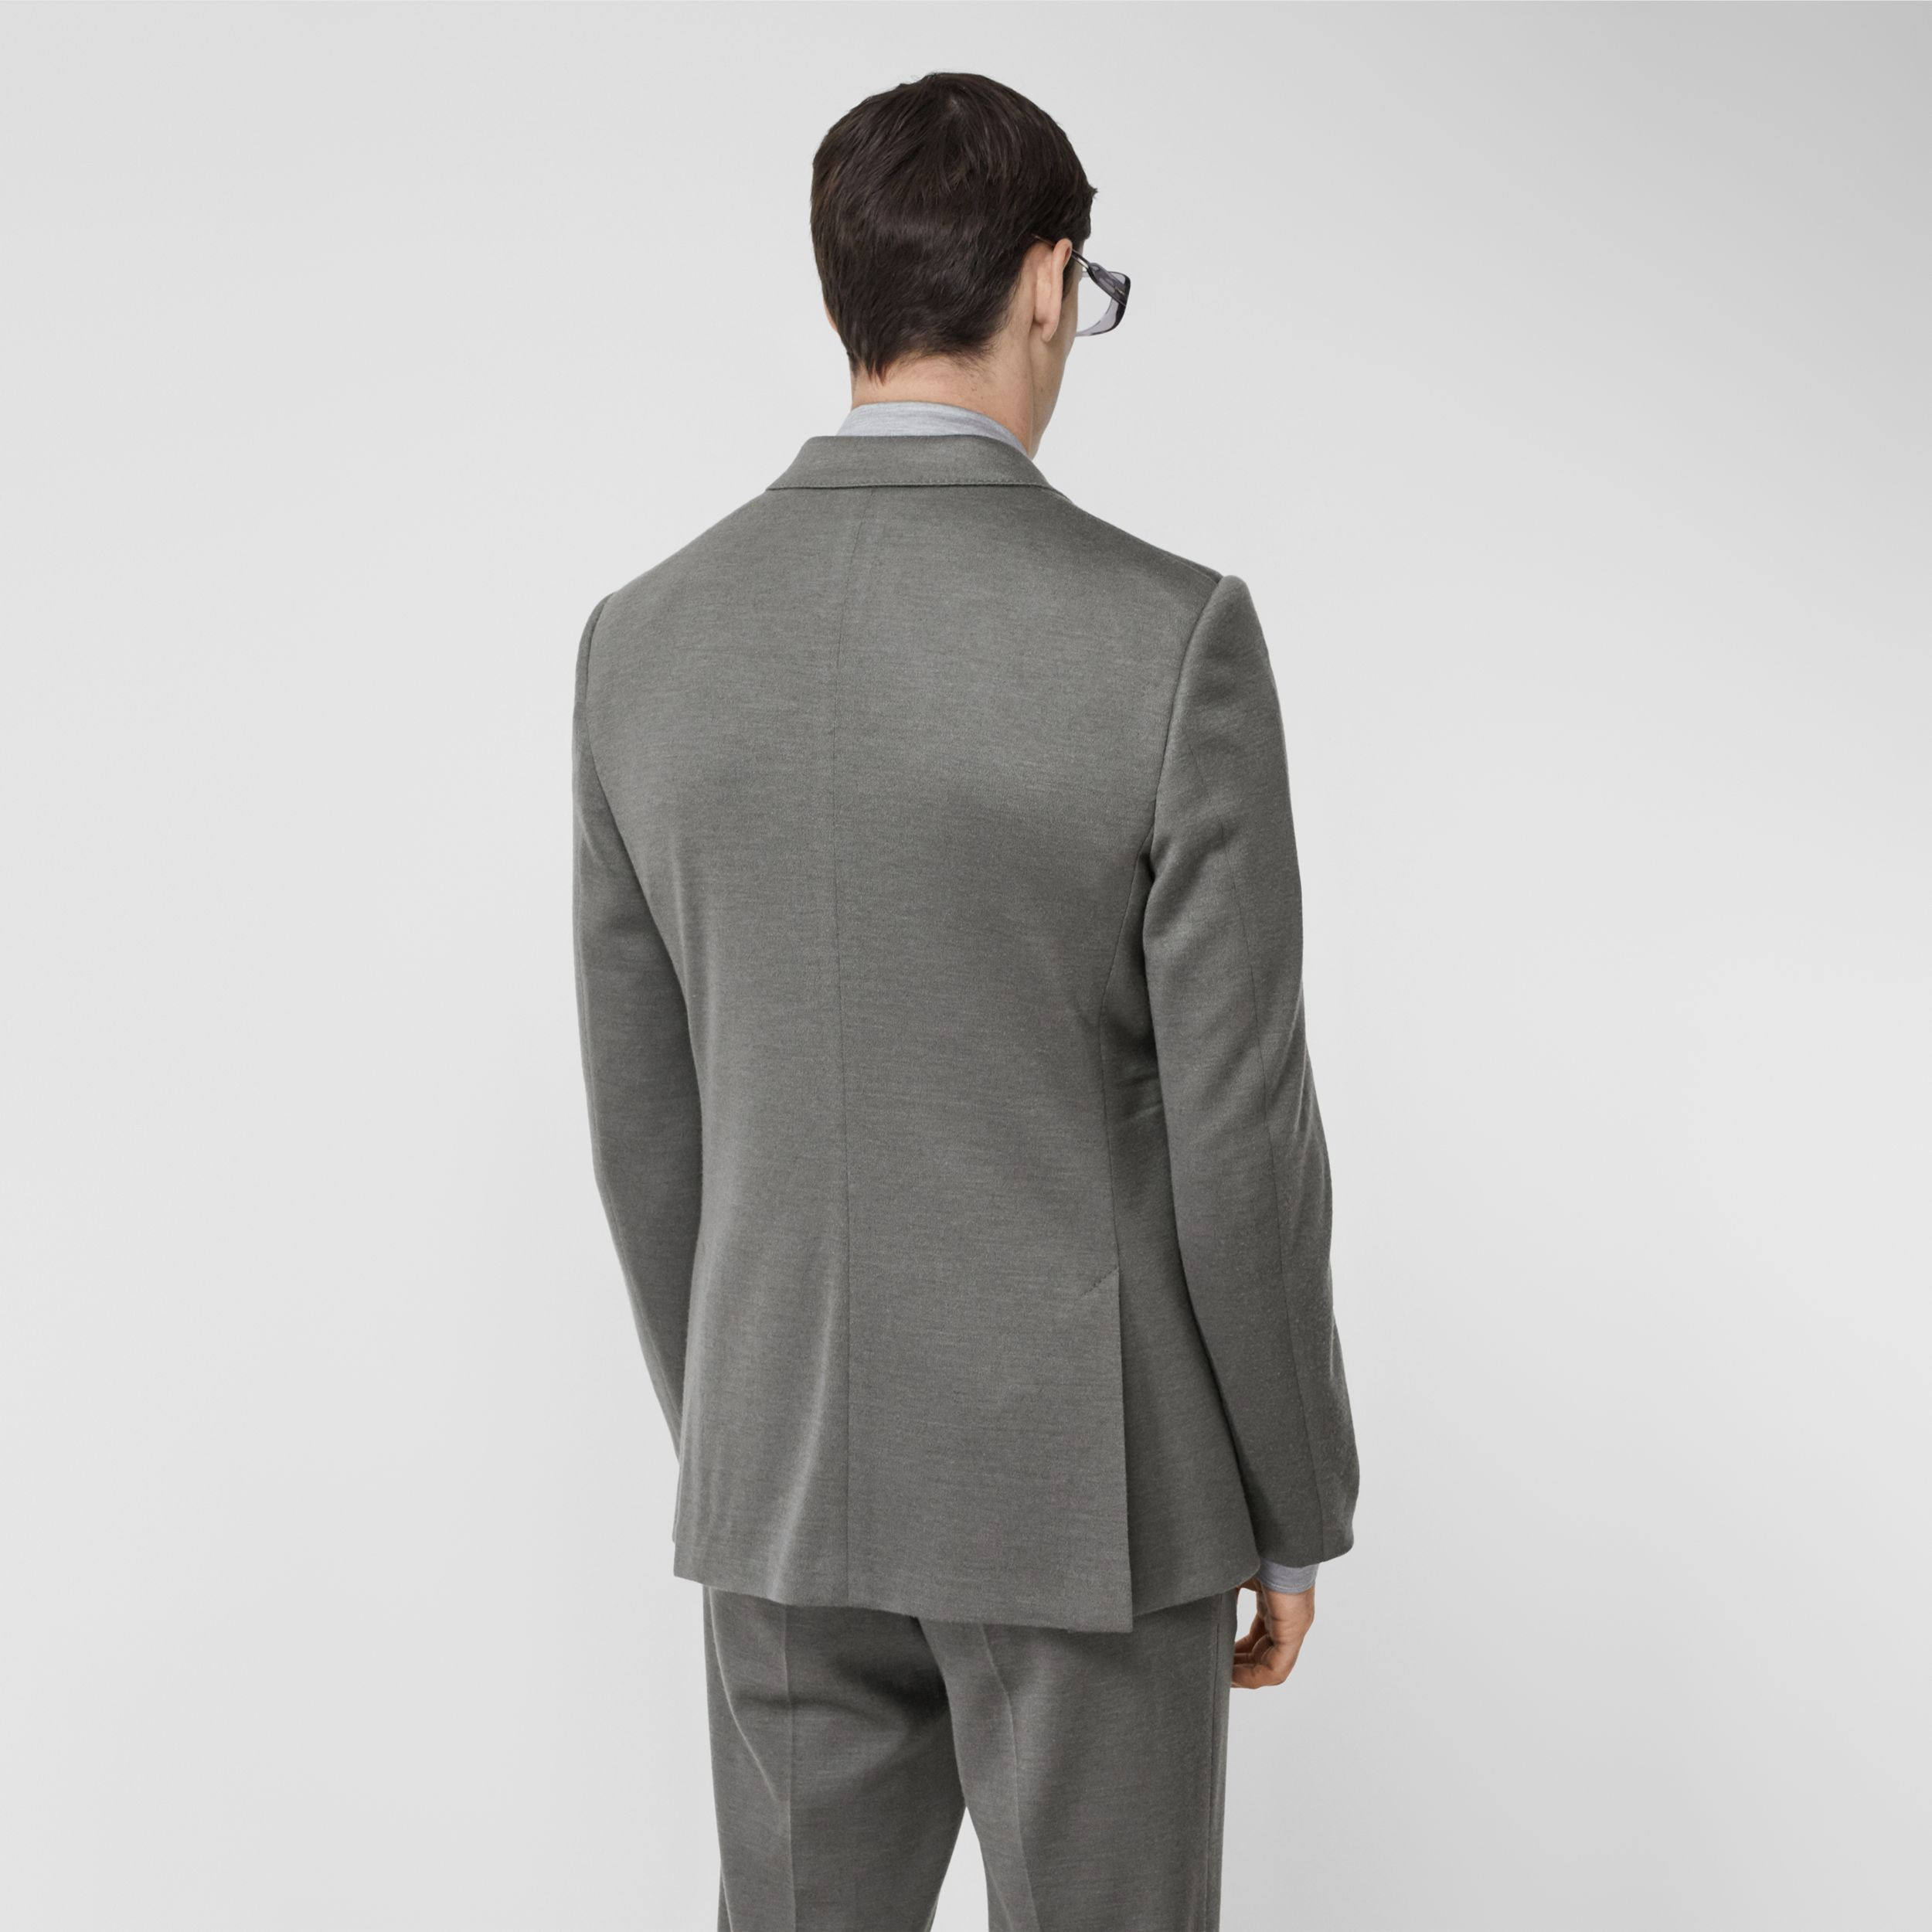 English Fit Cashmere Silk Jersey Tailored Jacket in Cloud Grey - Men | Burberry United Kingdom - 3